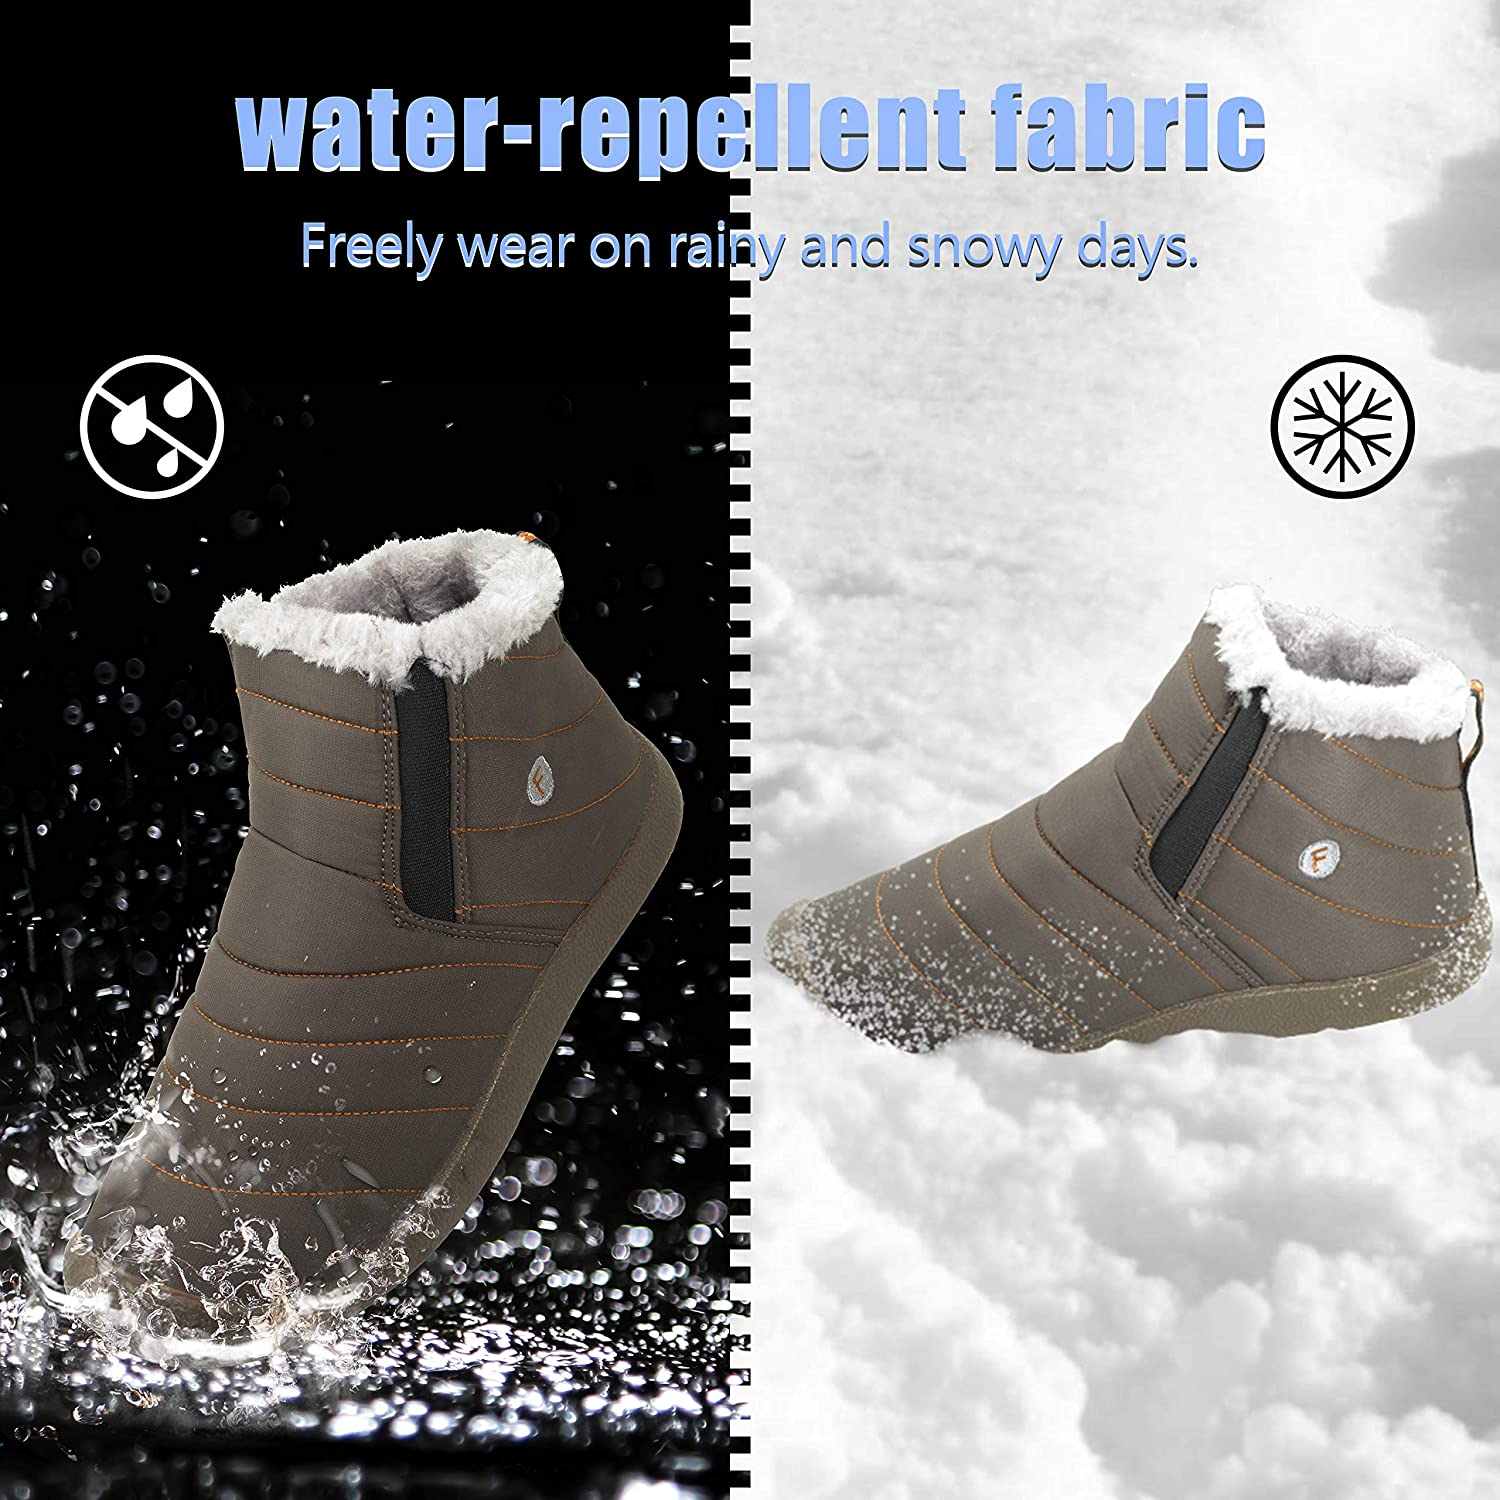 NEW-Vi Winter Snow Boots,Warm Ankle Boots Slip-on Water Resistant Booties Men Women,Lightweight Winter Shoes Full Fur